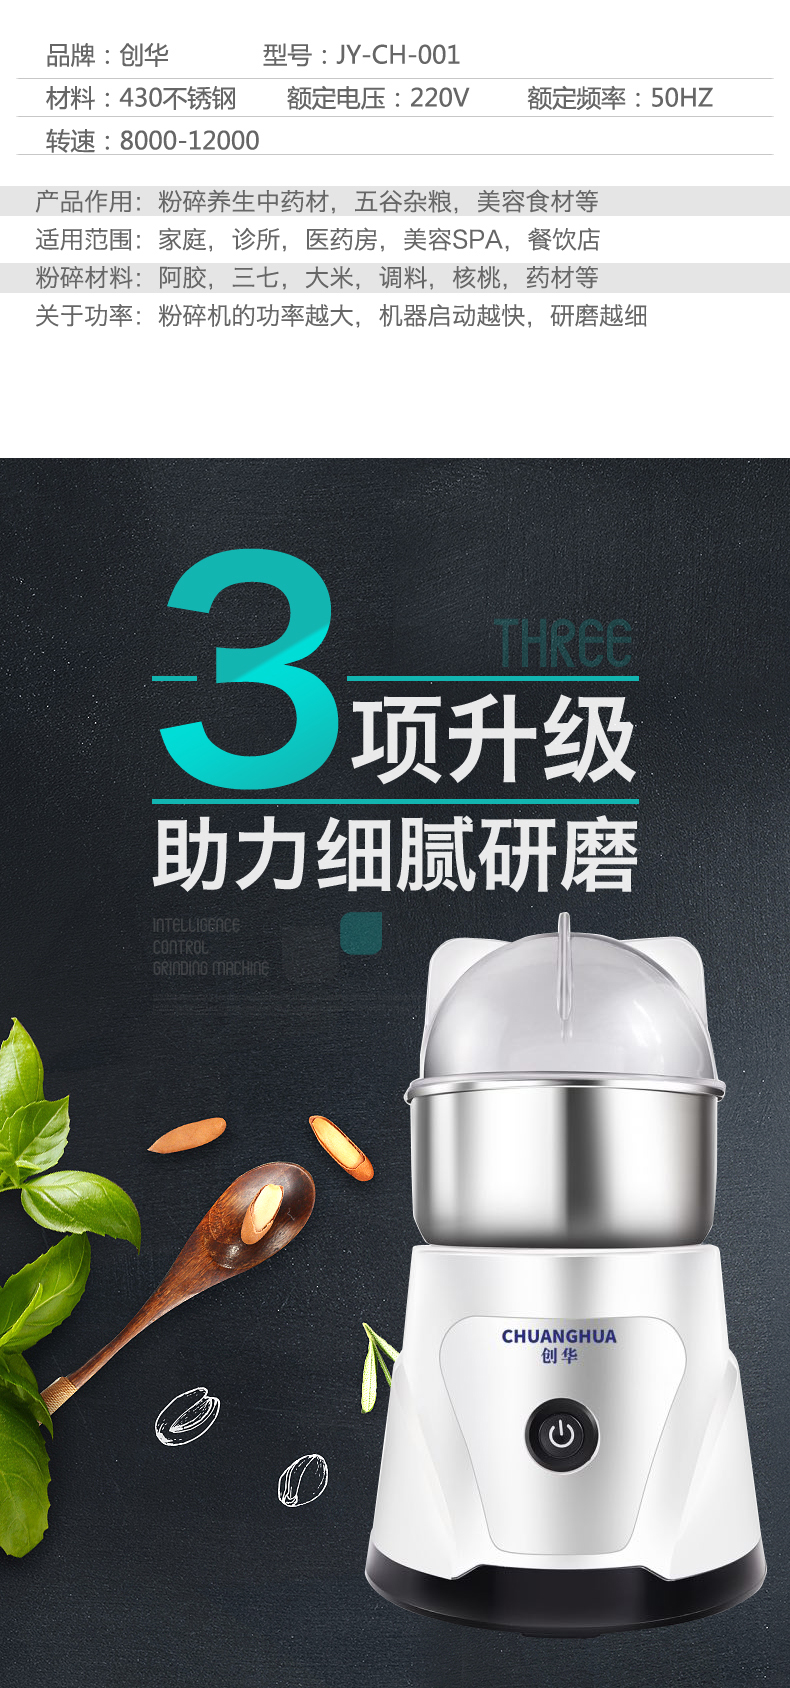 Grinder Mill Powder Machine Household Small Multi-functional Ultrafine Grain Mill Chinese Herbal Medicine Grinder 13